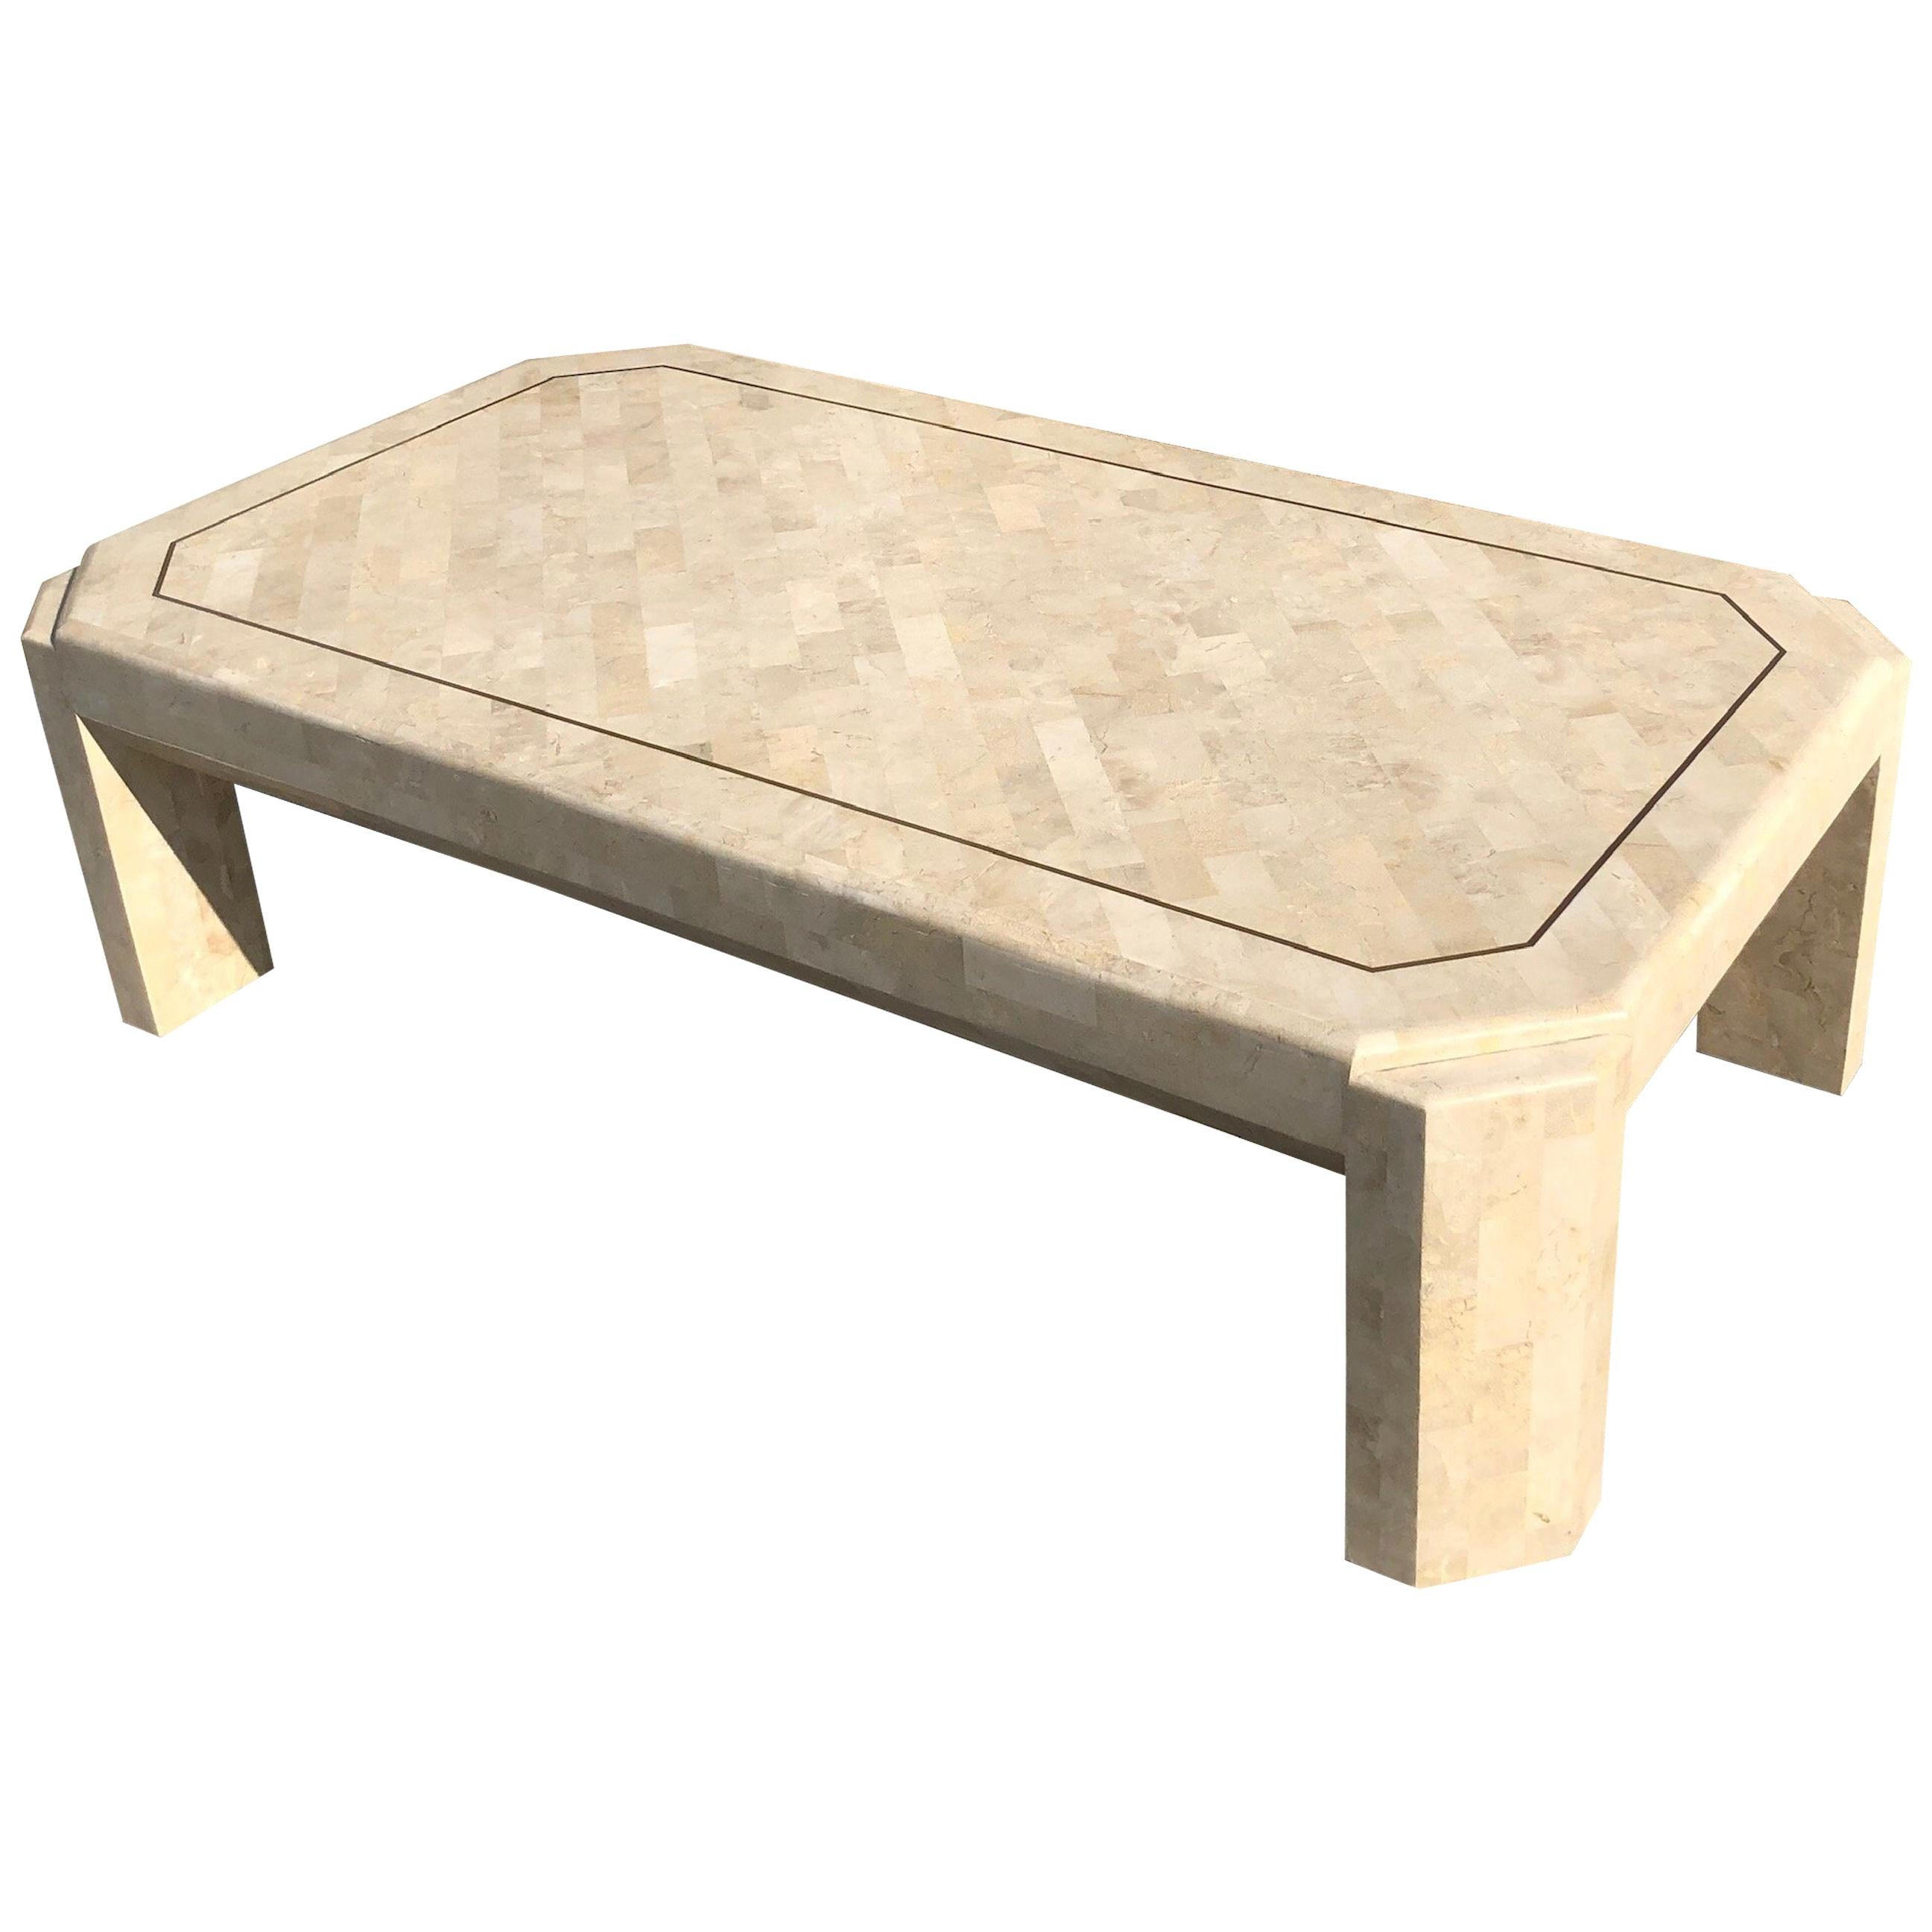 Fossil Stone and Brass Cocktail Table by Maitland Smith